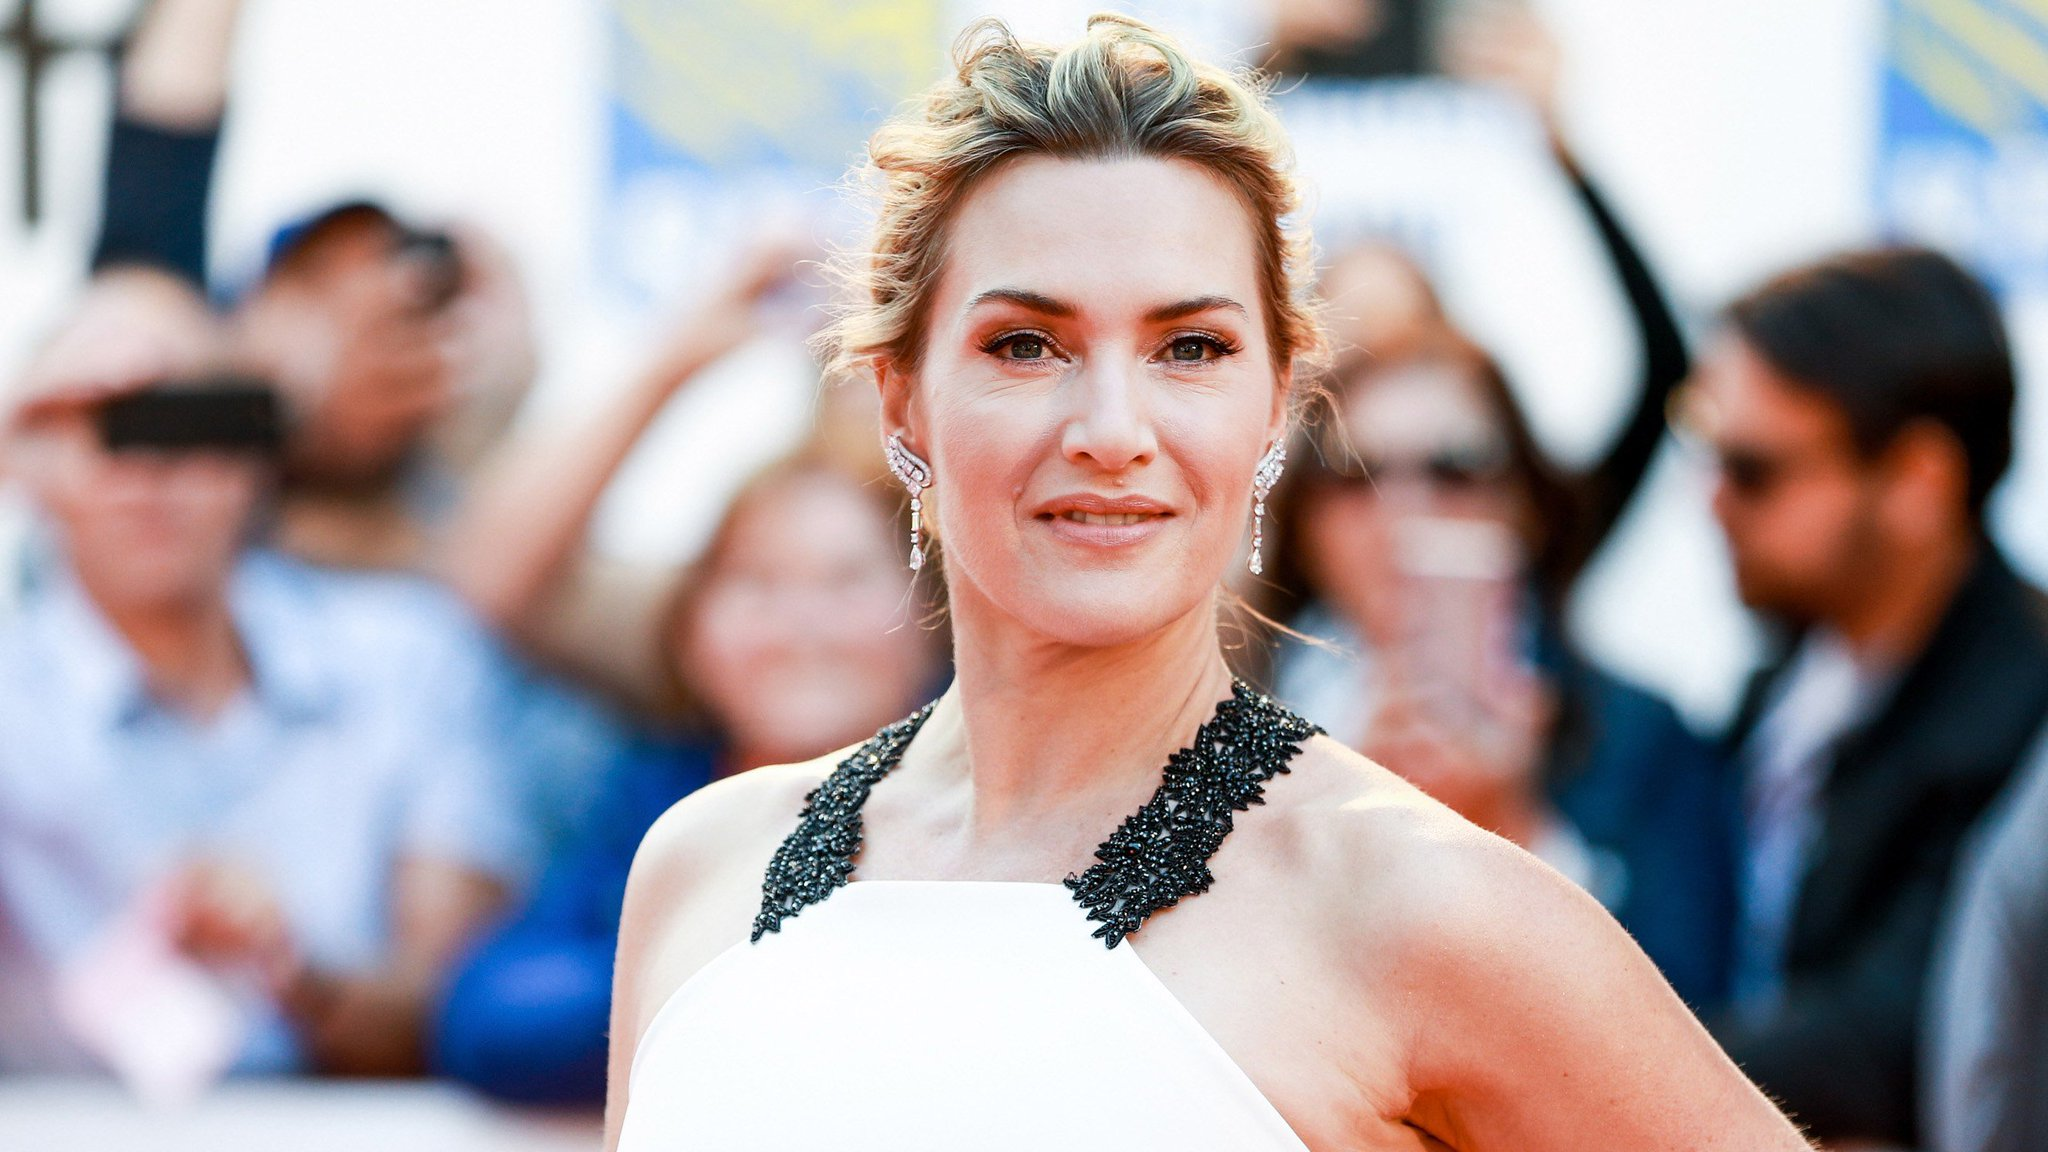 Kate Winslet says she deliberately didn't thank Harvey Weinstein in her Oscar speech: https://t.co/MvUGIZI4JG https://t.co/IIDk2TEG43